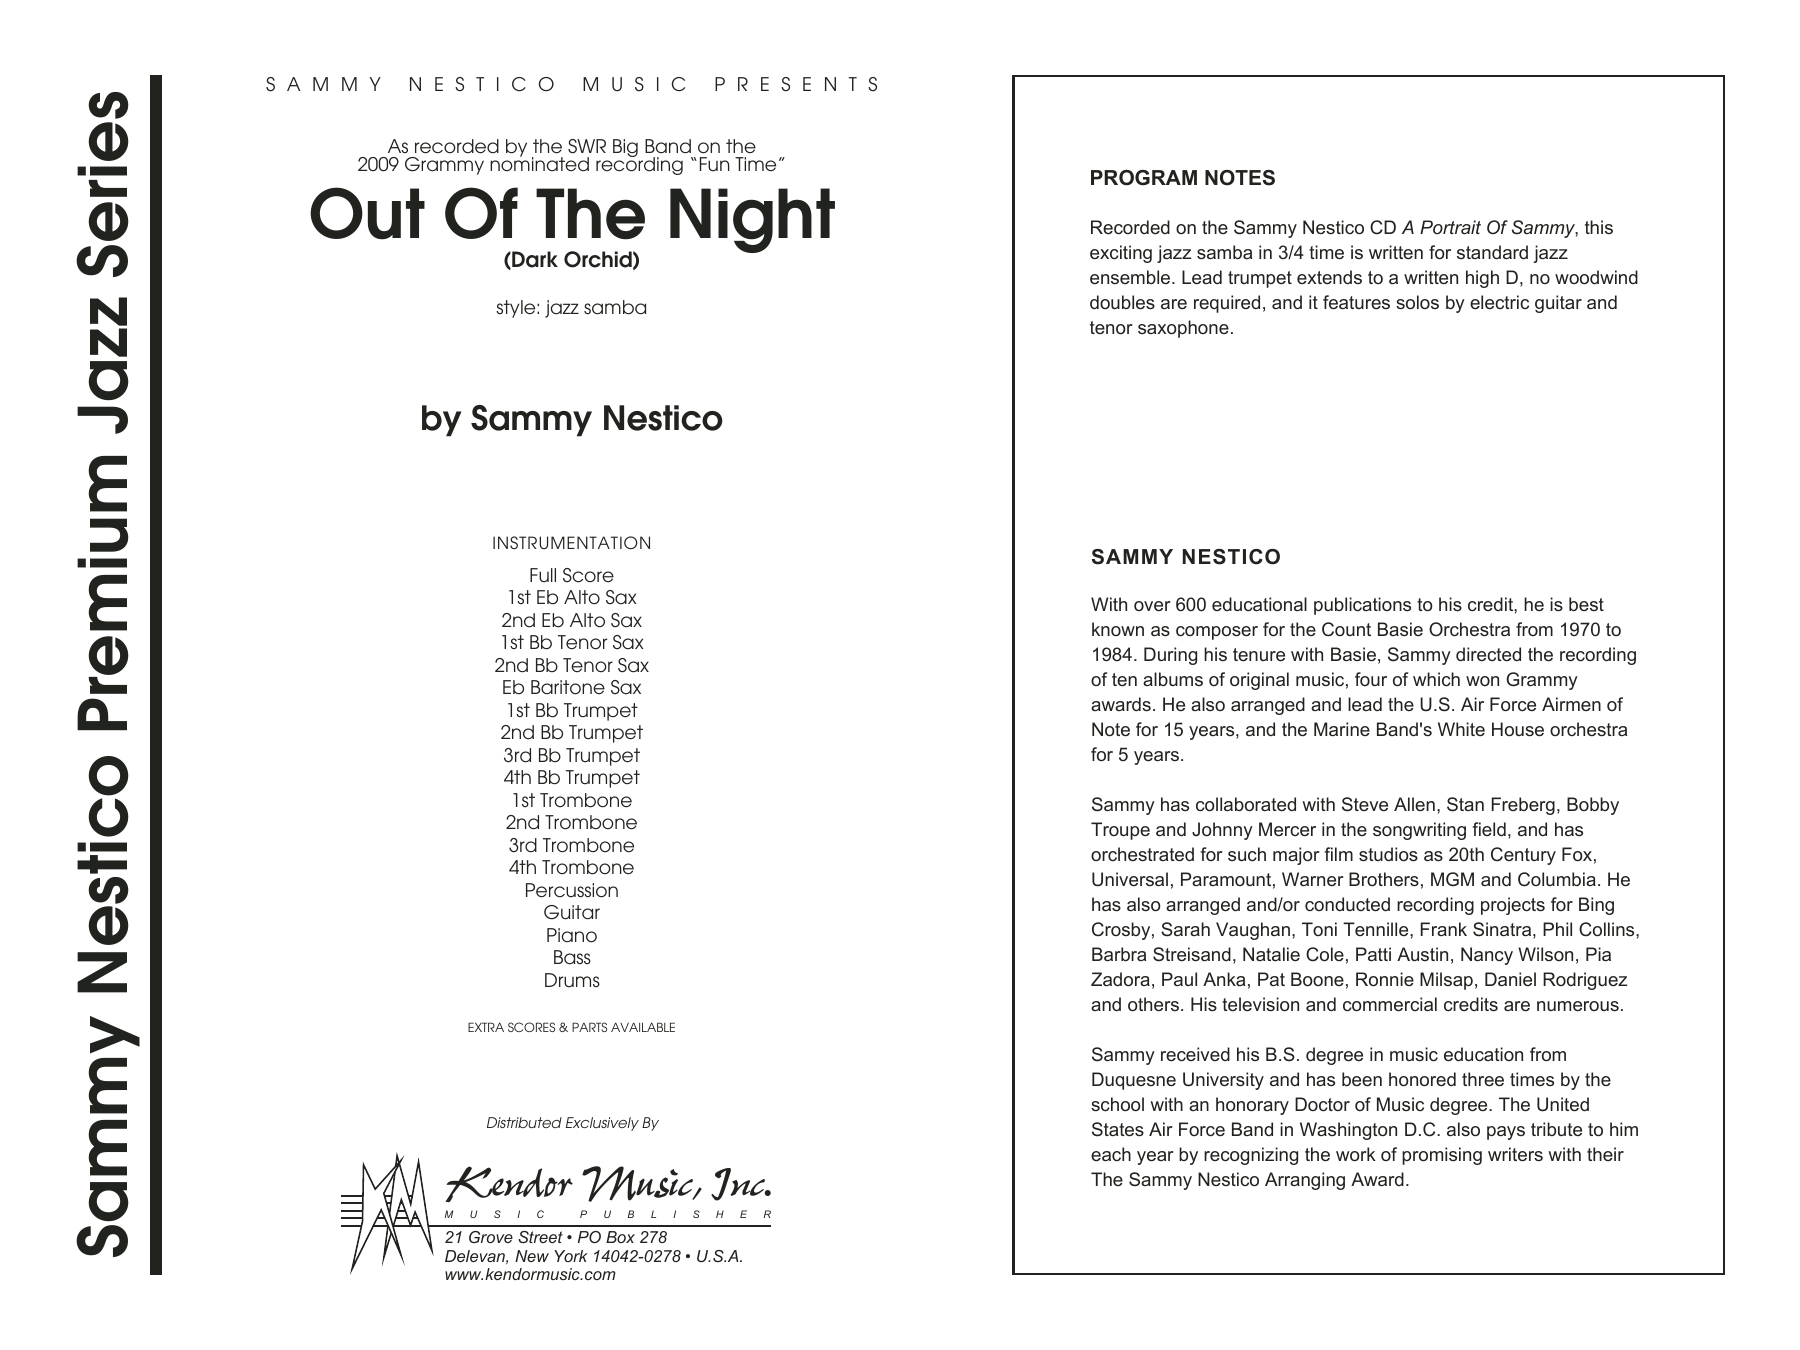 Out of the Night - Full Score Sheet Music